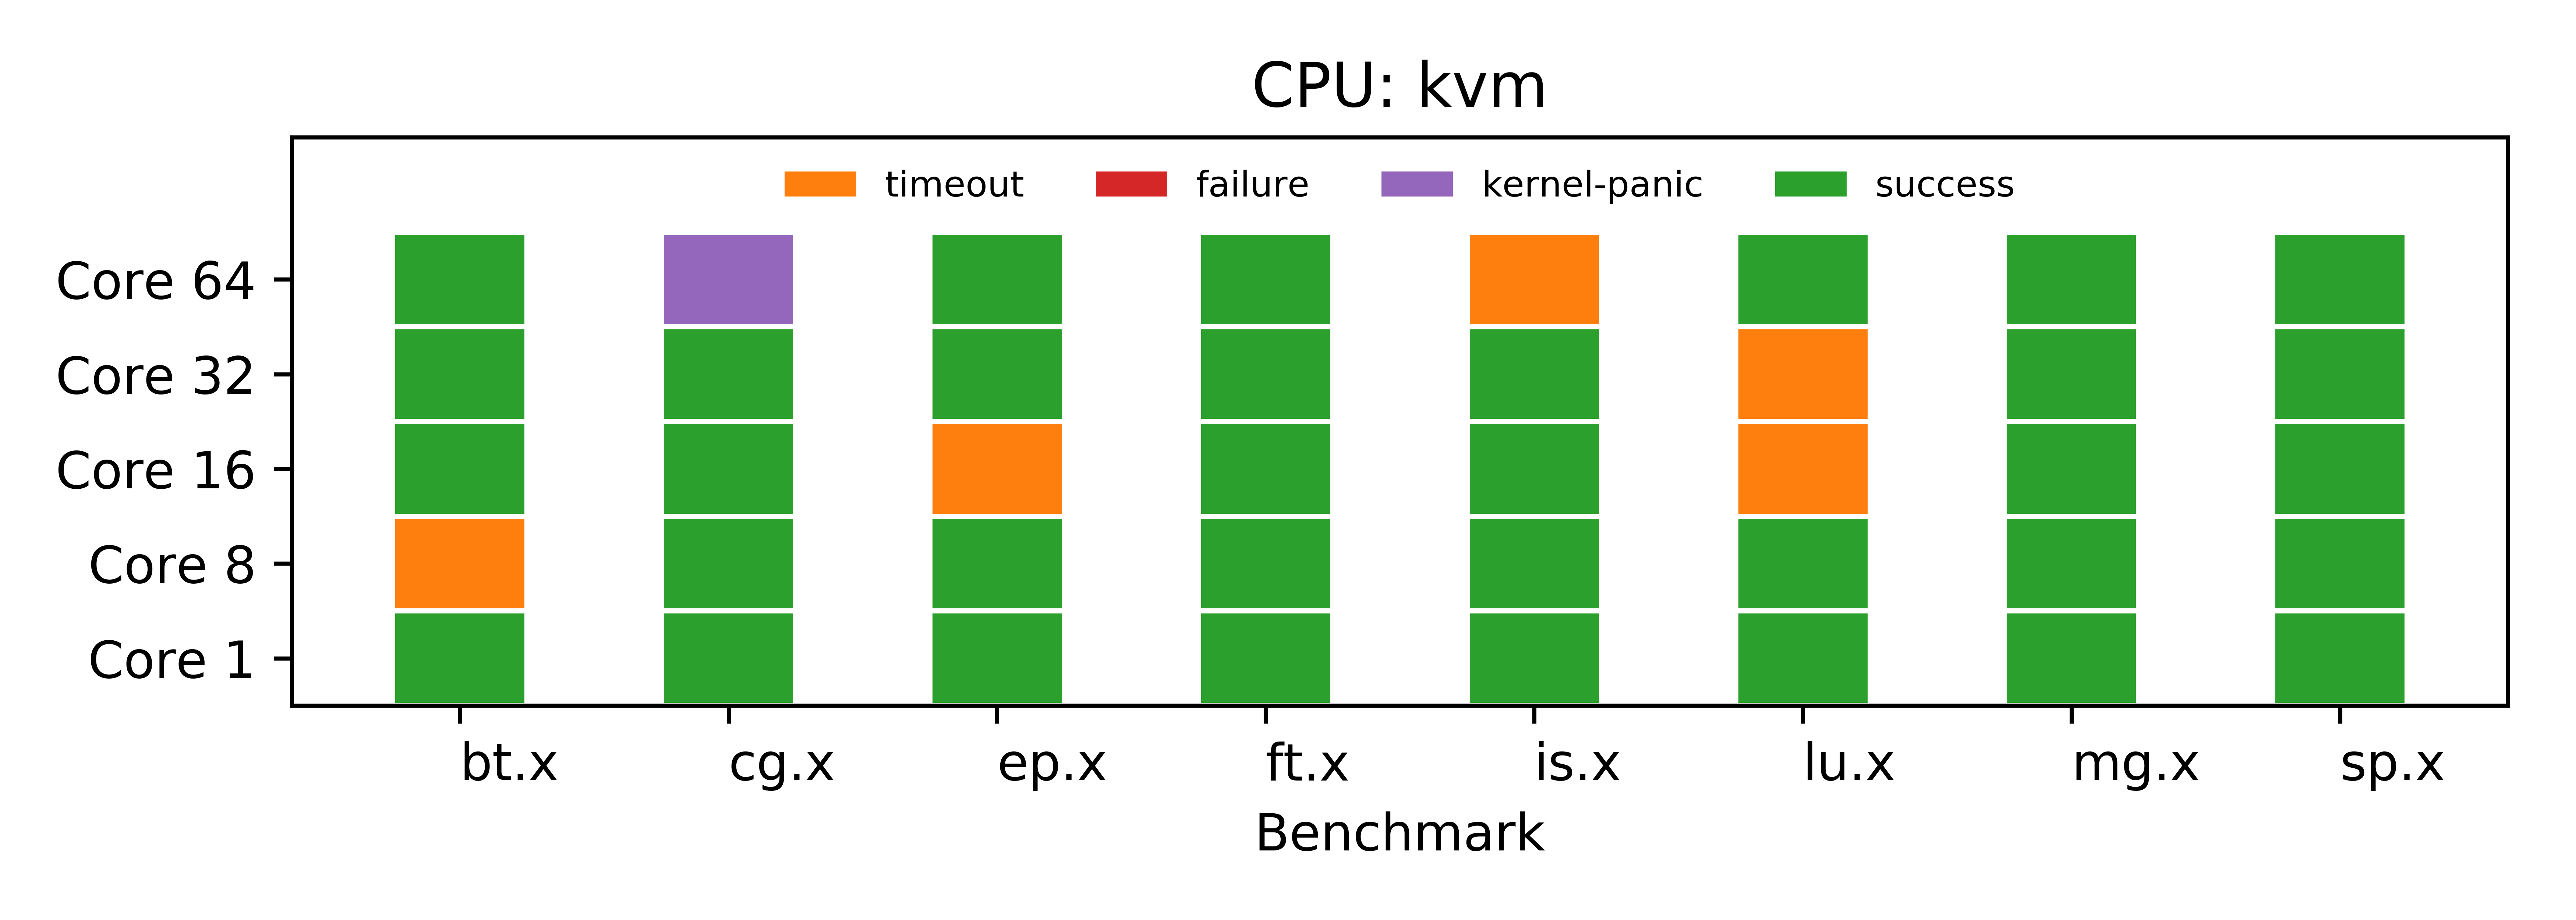 NPB Status with KVM CPU